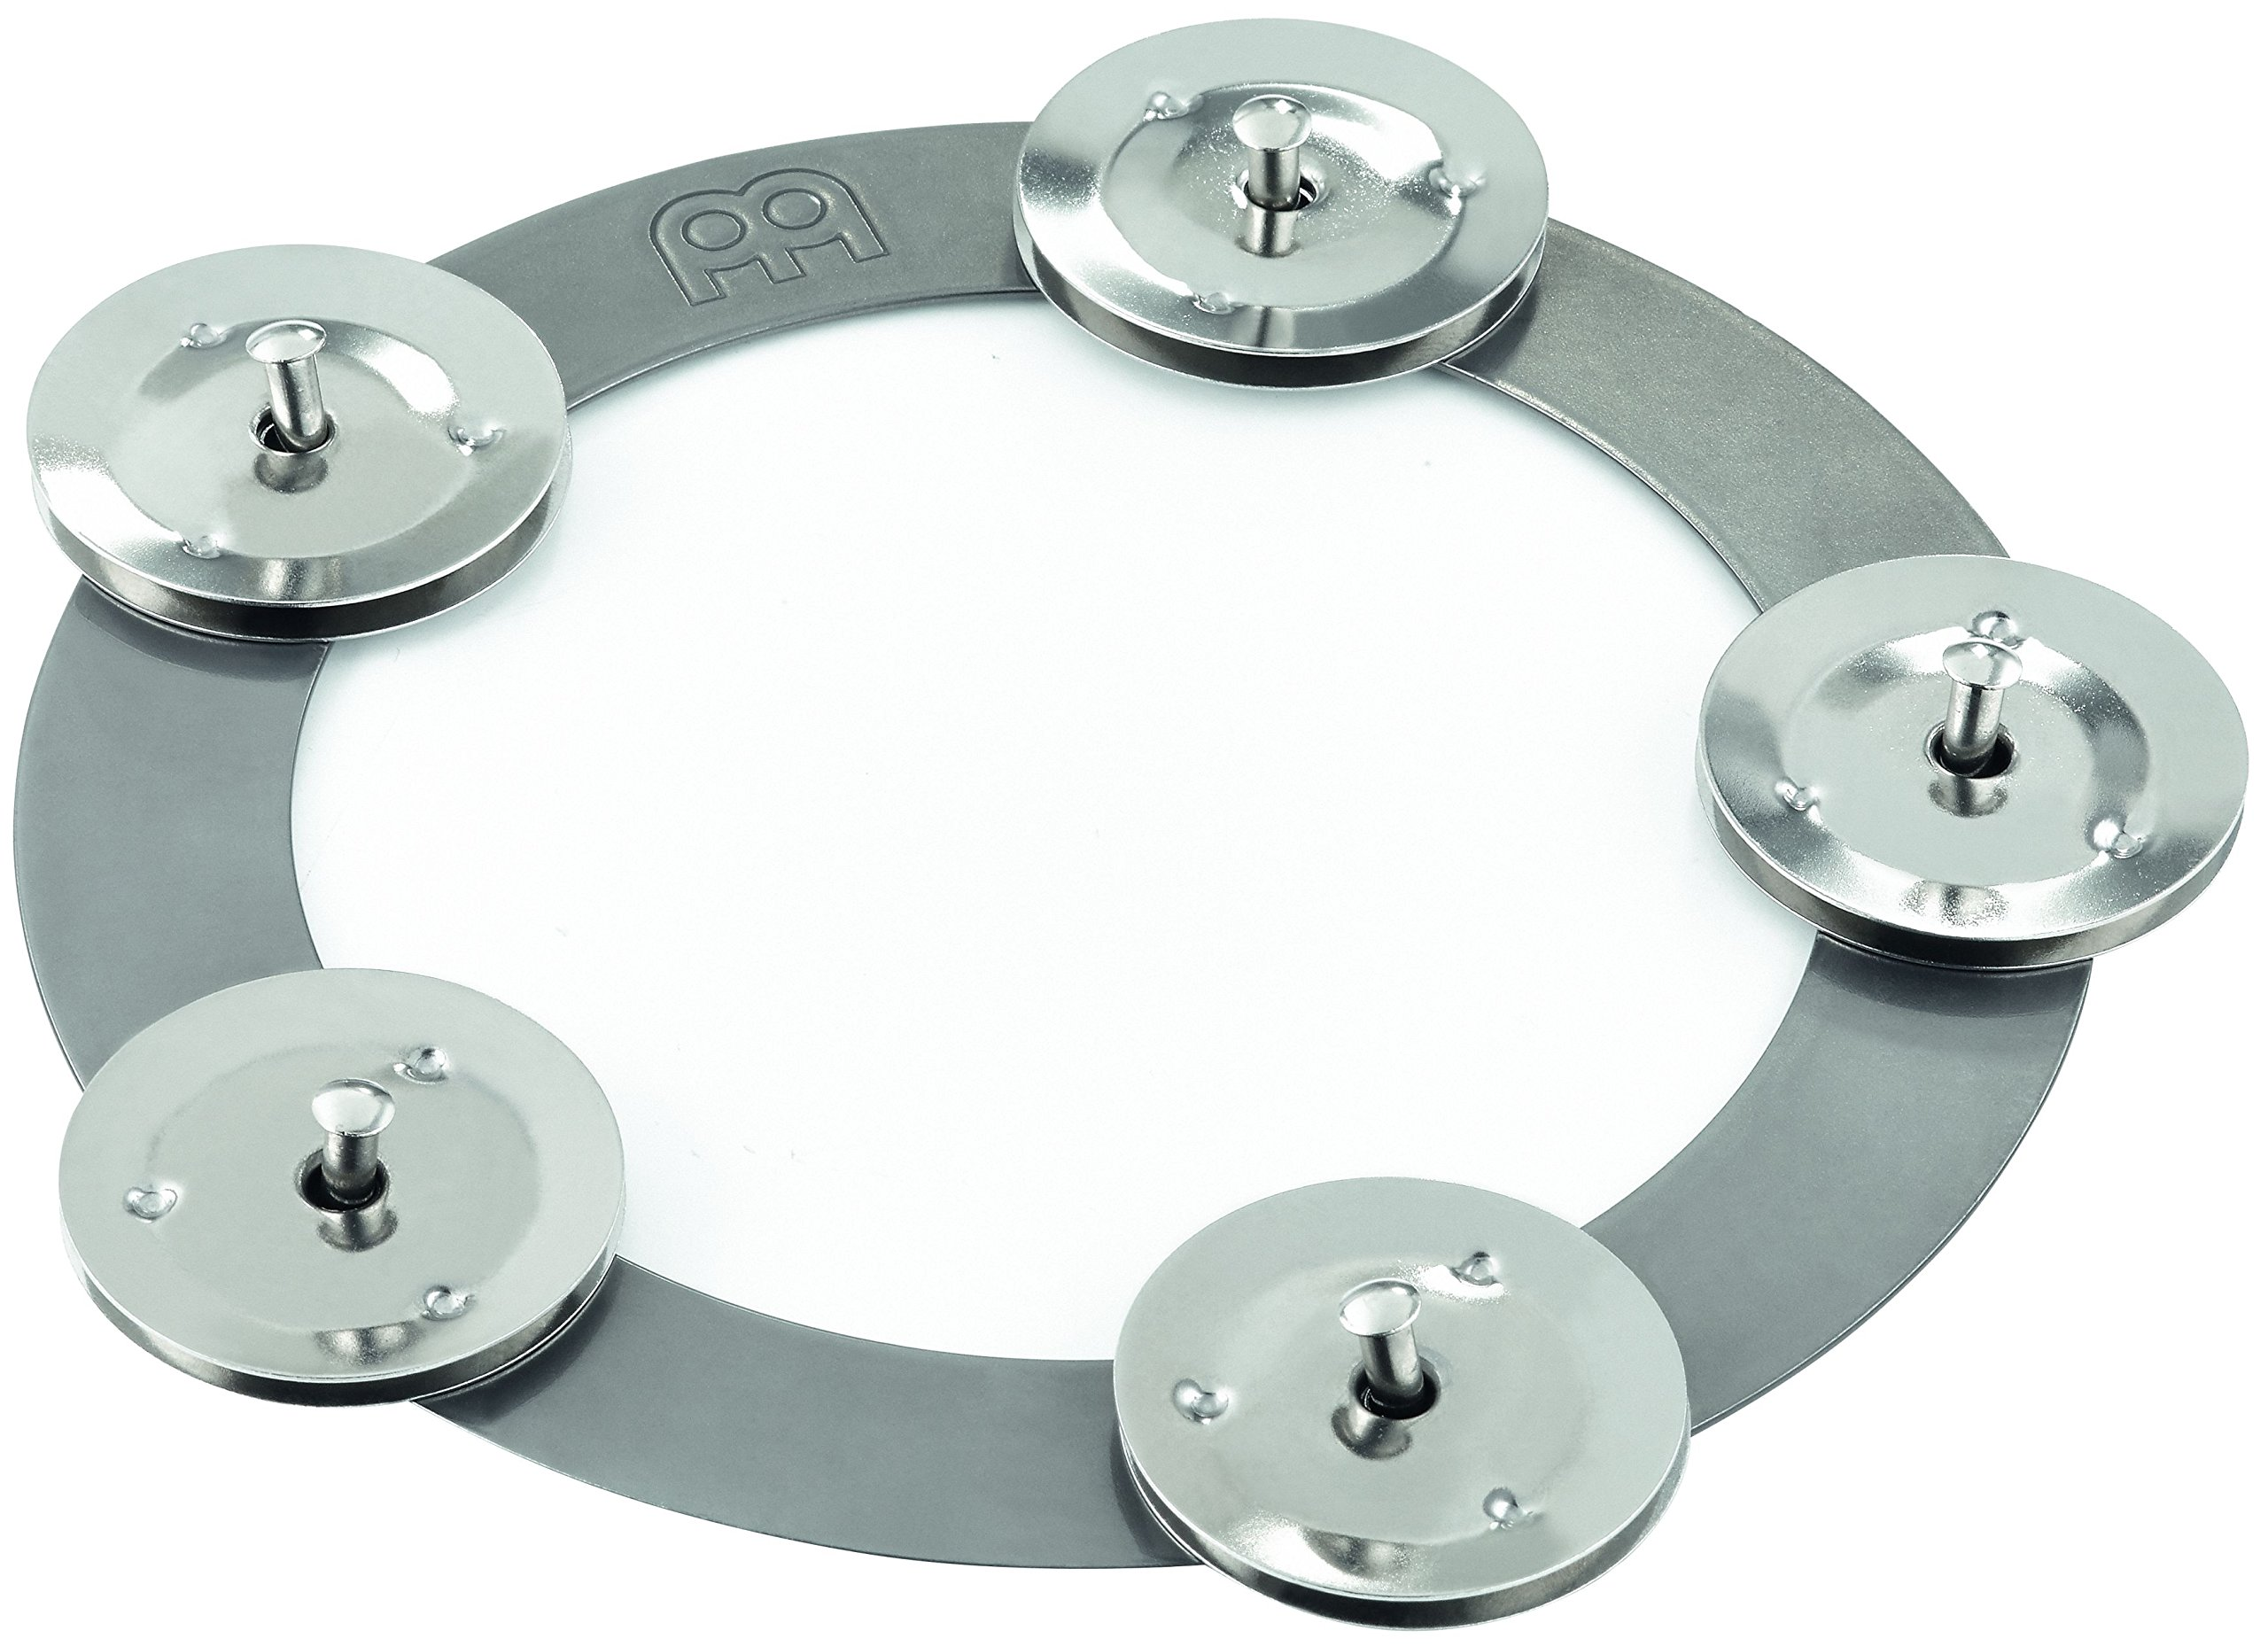 Meinl Cymbals CRING Ching Ring Steel Tambourine Jingle Effect for Hihats, Crashes, Rides, and Cymbal Stacks (VIDEO)